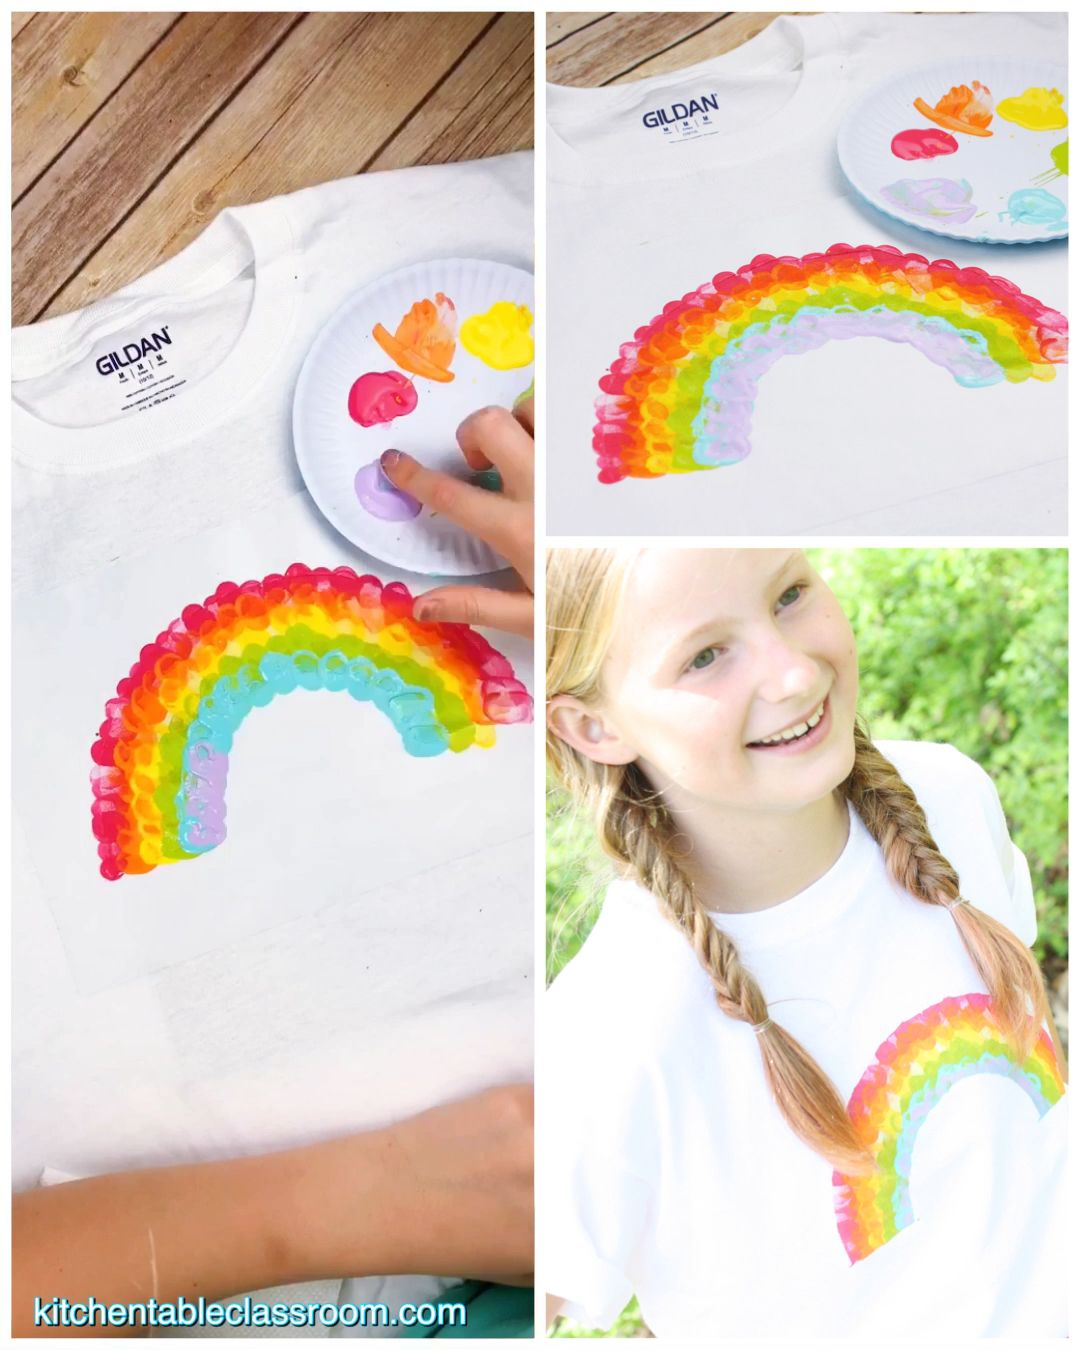 DIY T-Shirt Painting- with Freezer Stencil Paper - The Kitchen Table Classroom